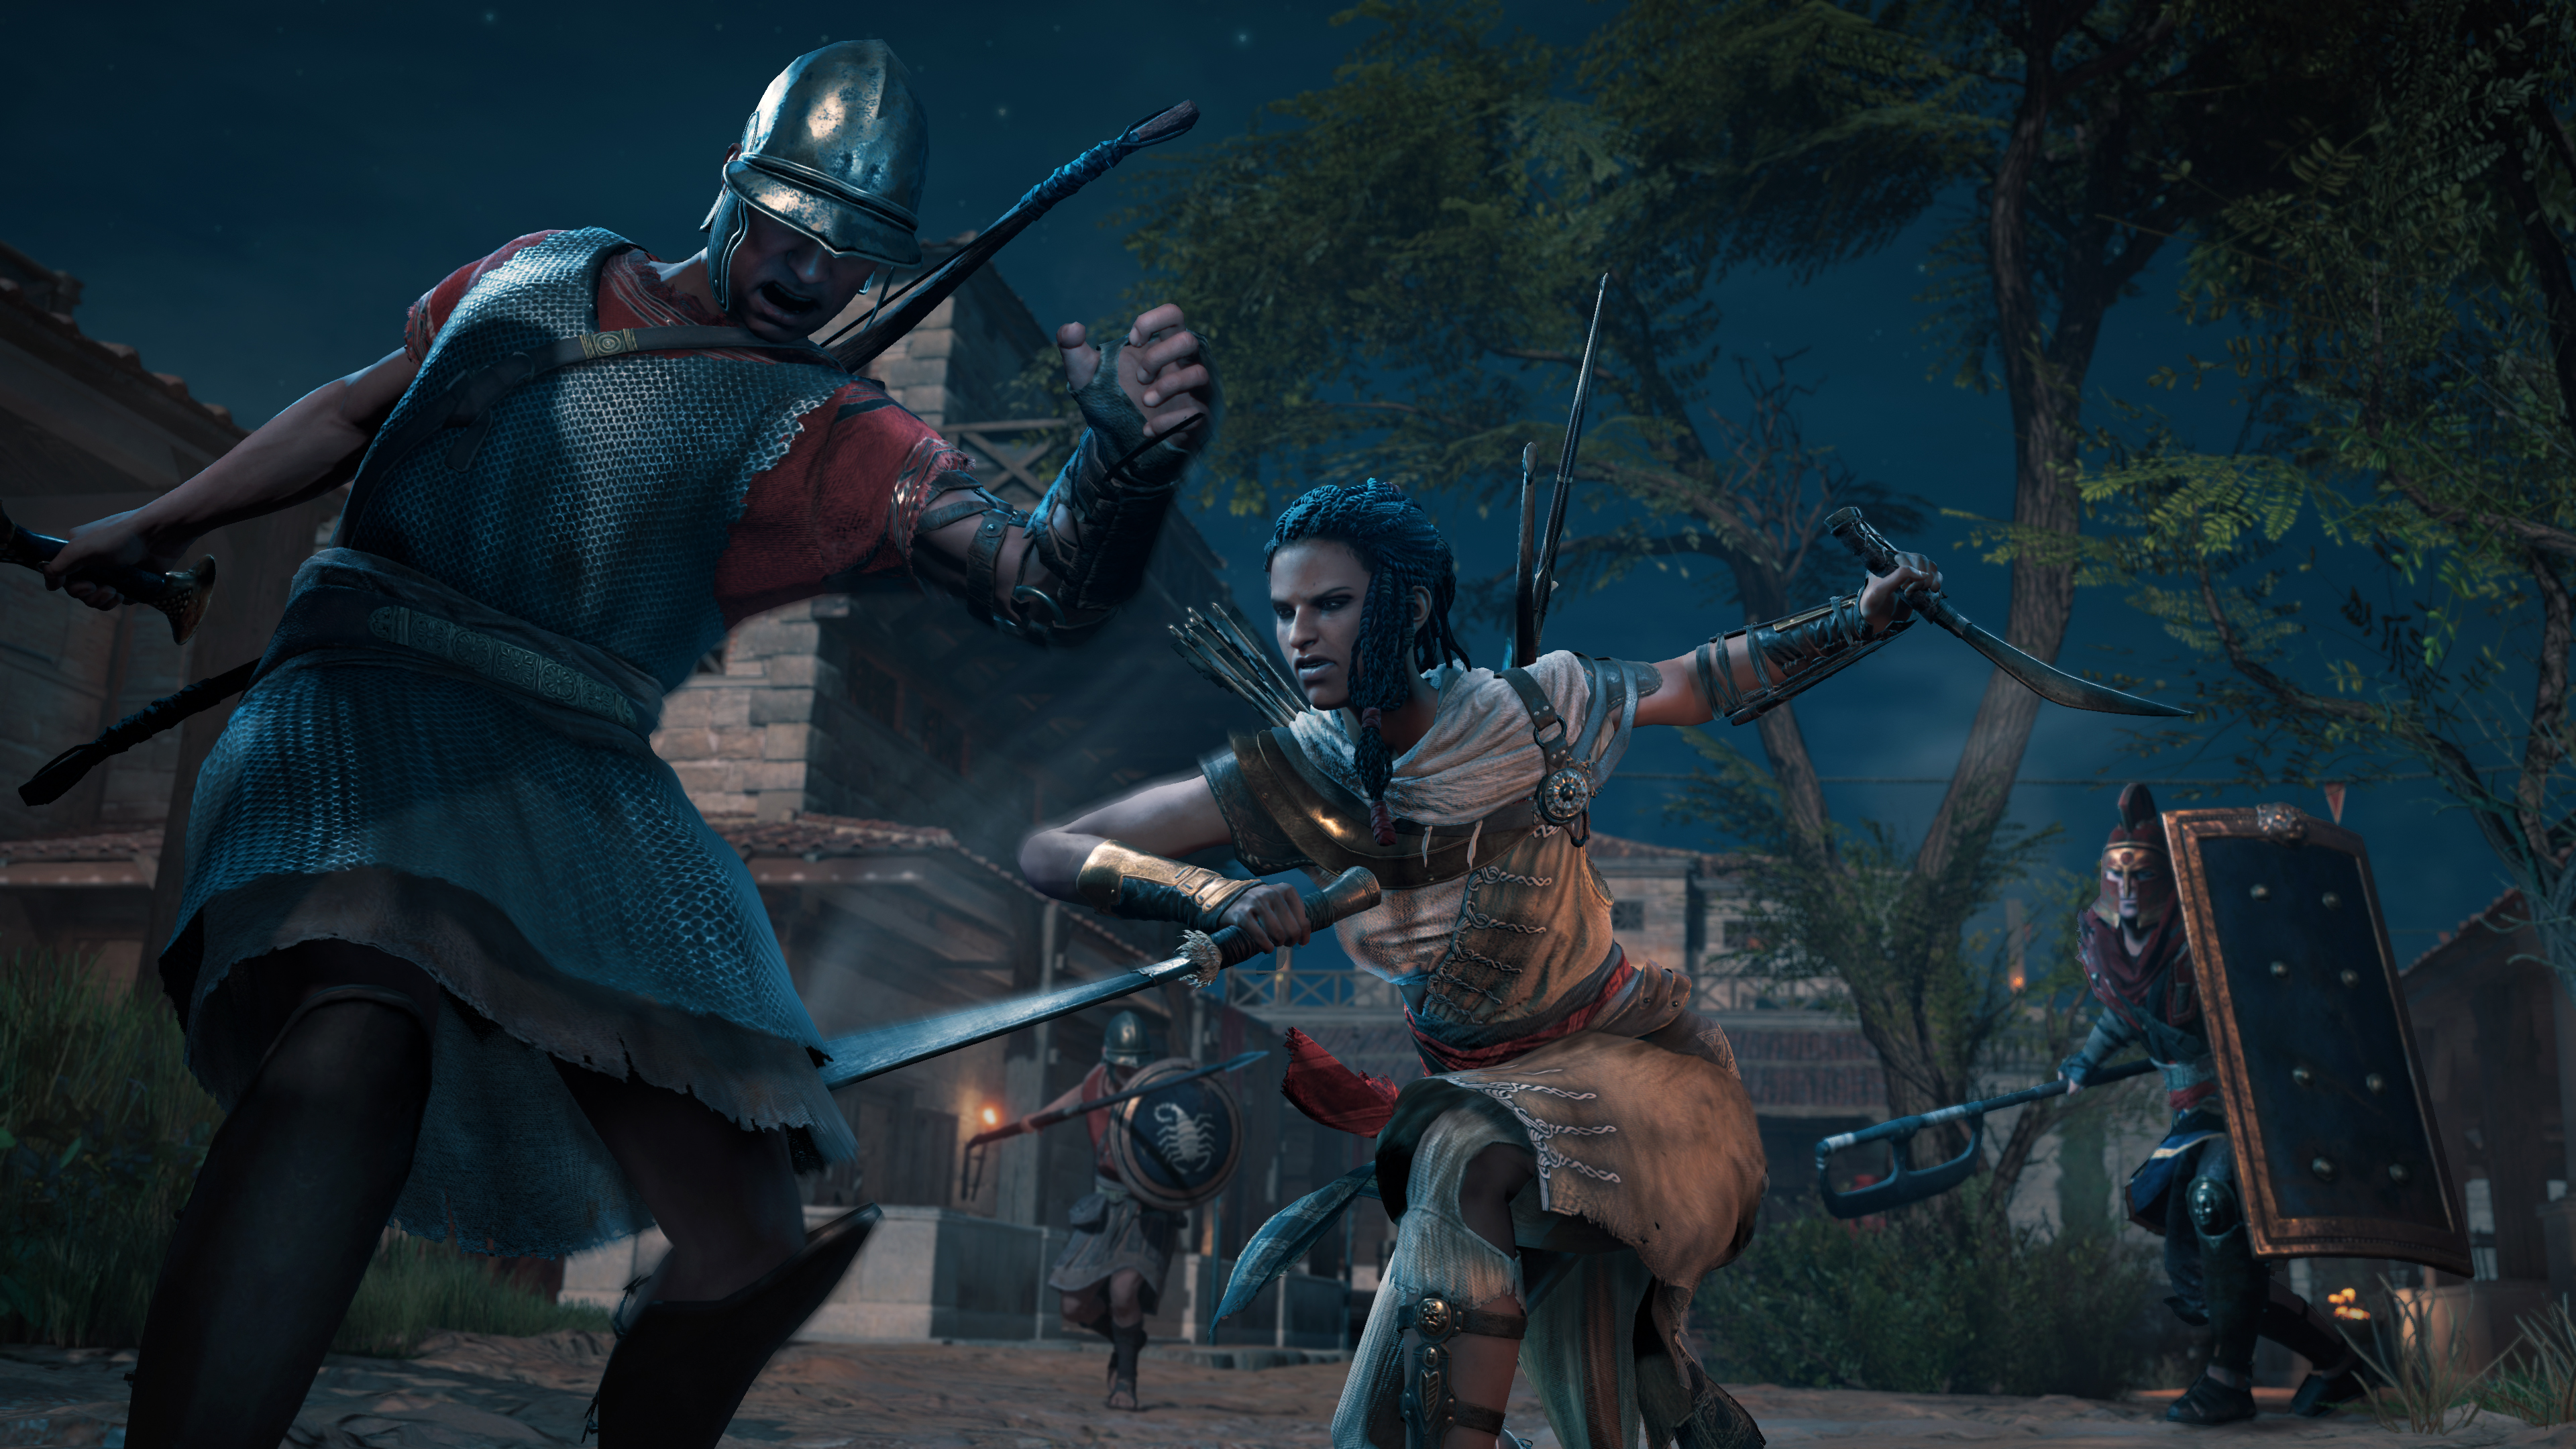 Assassin S Creed Origins Pushes Ubisoft To 889 4 Million In